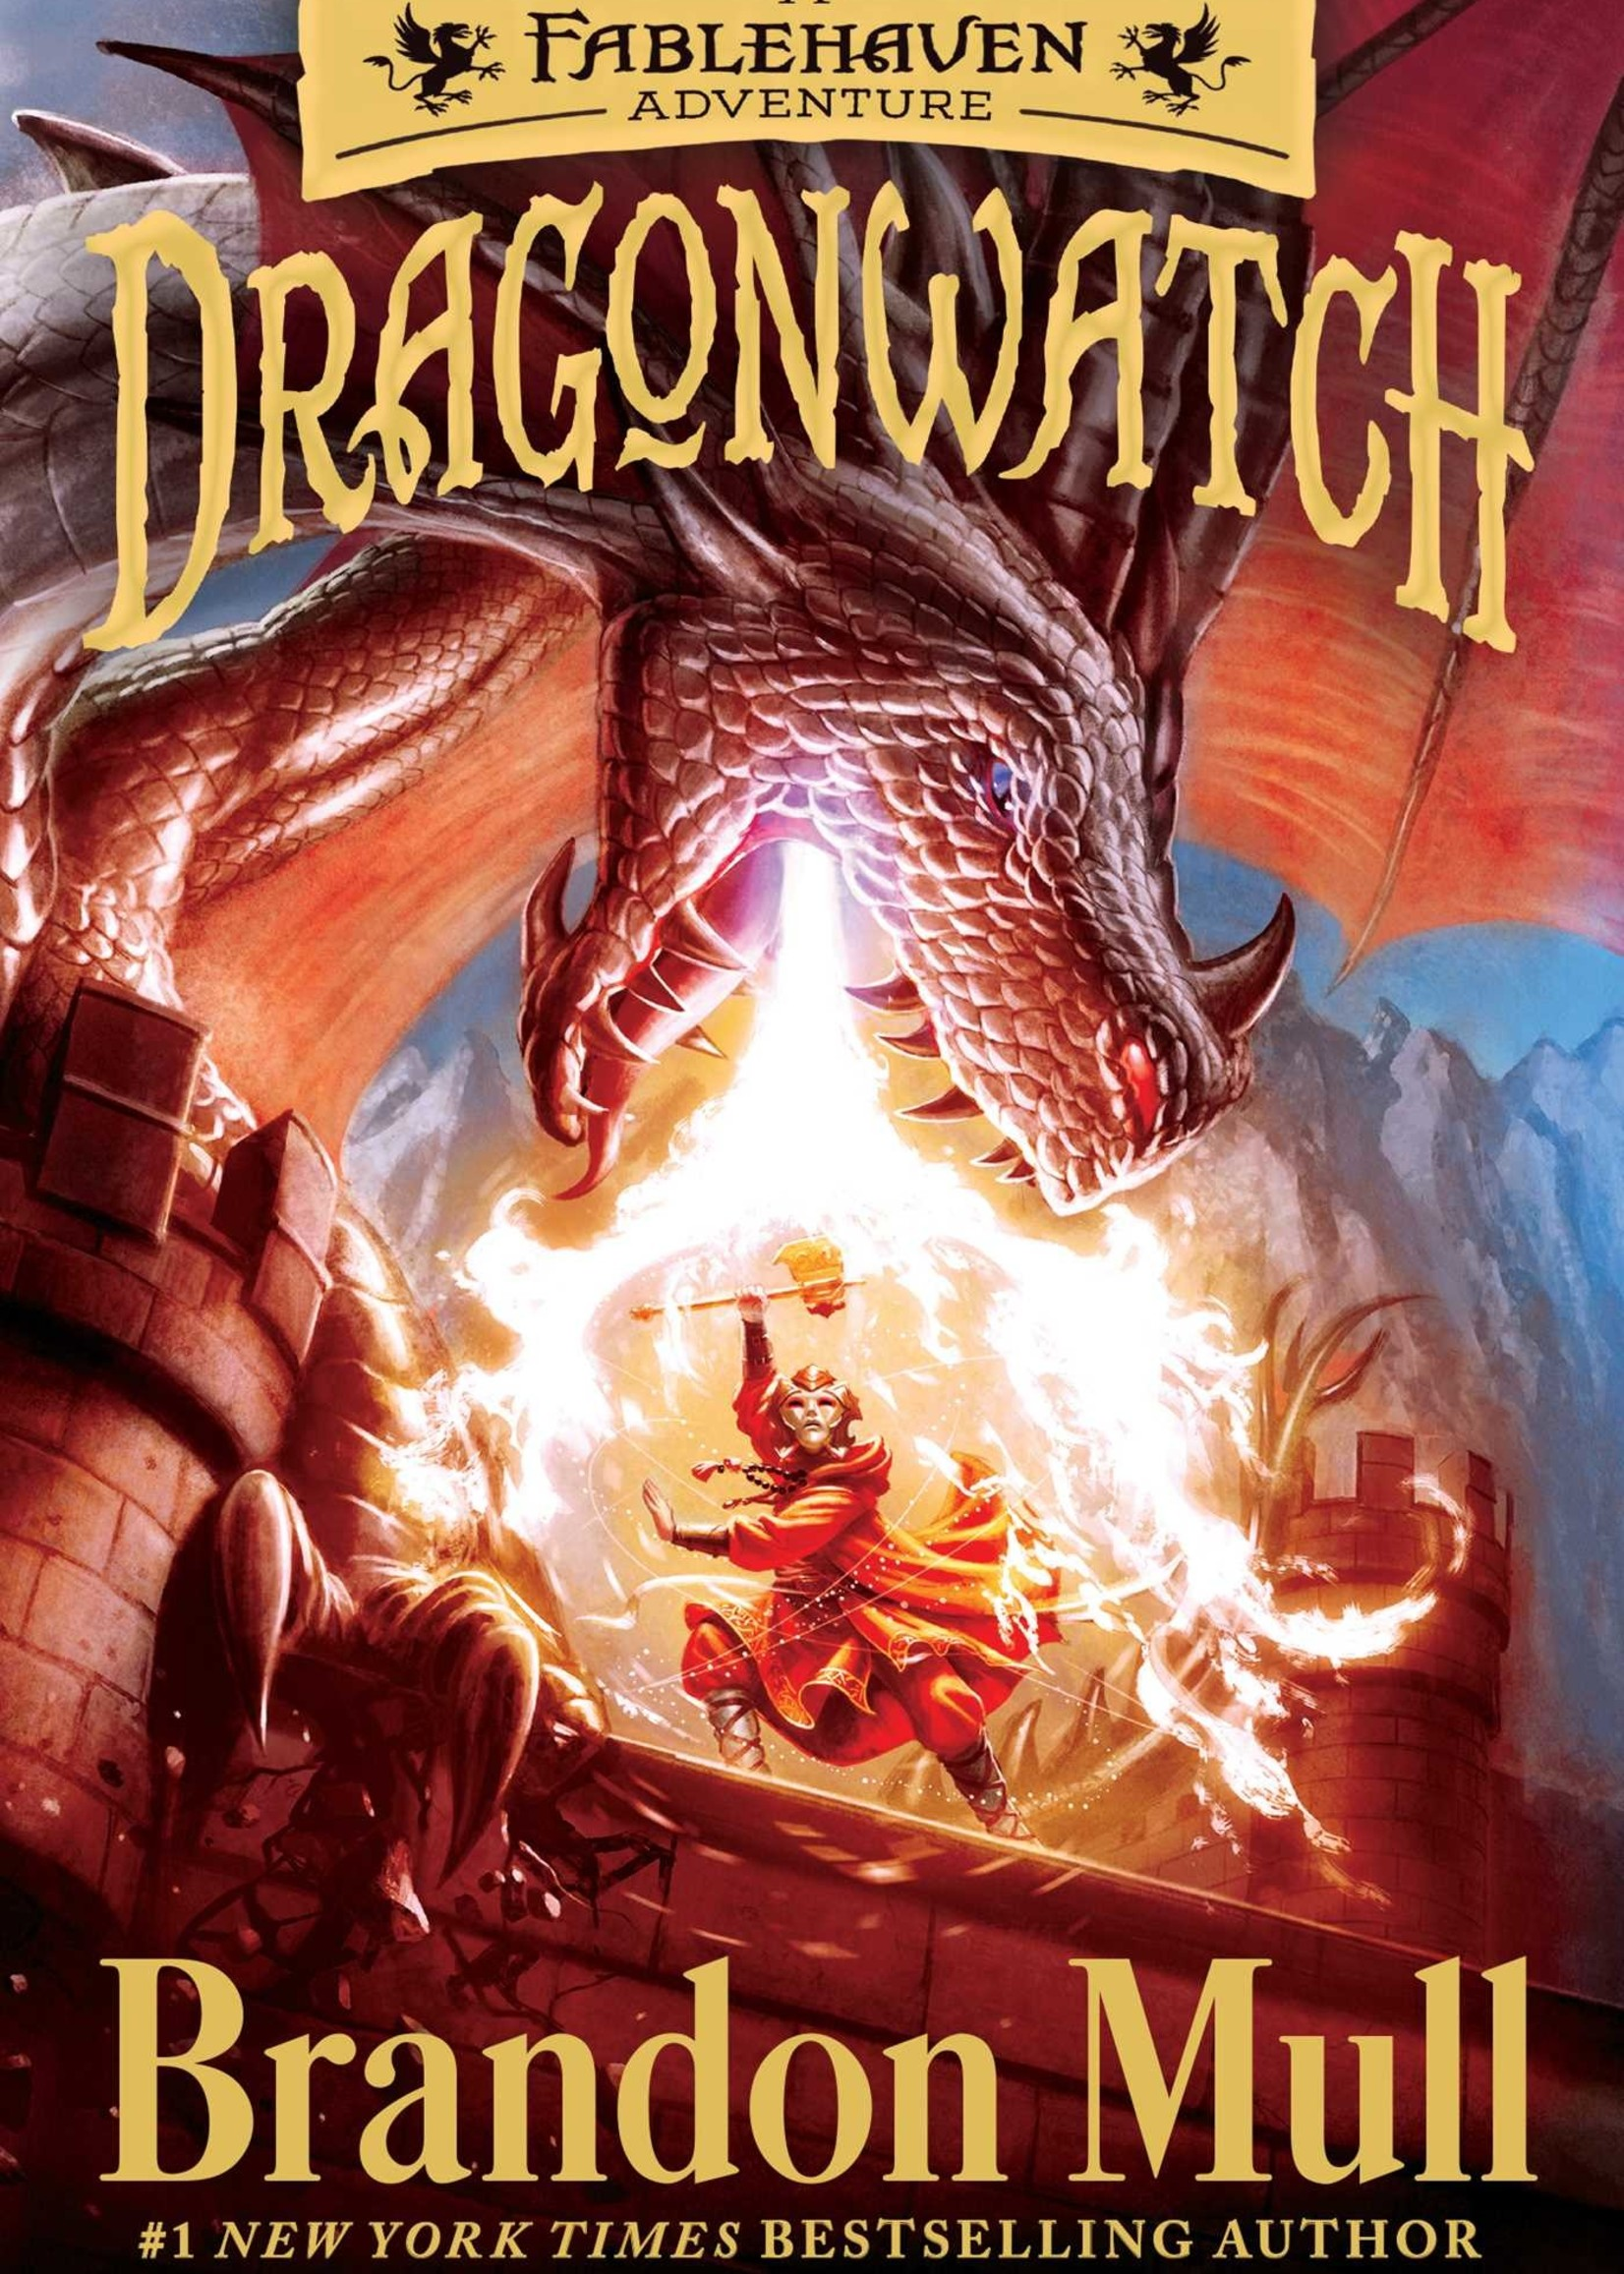 Dragonwatch #01, A Fablehaven Adventure - Paperback